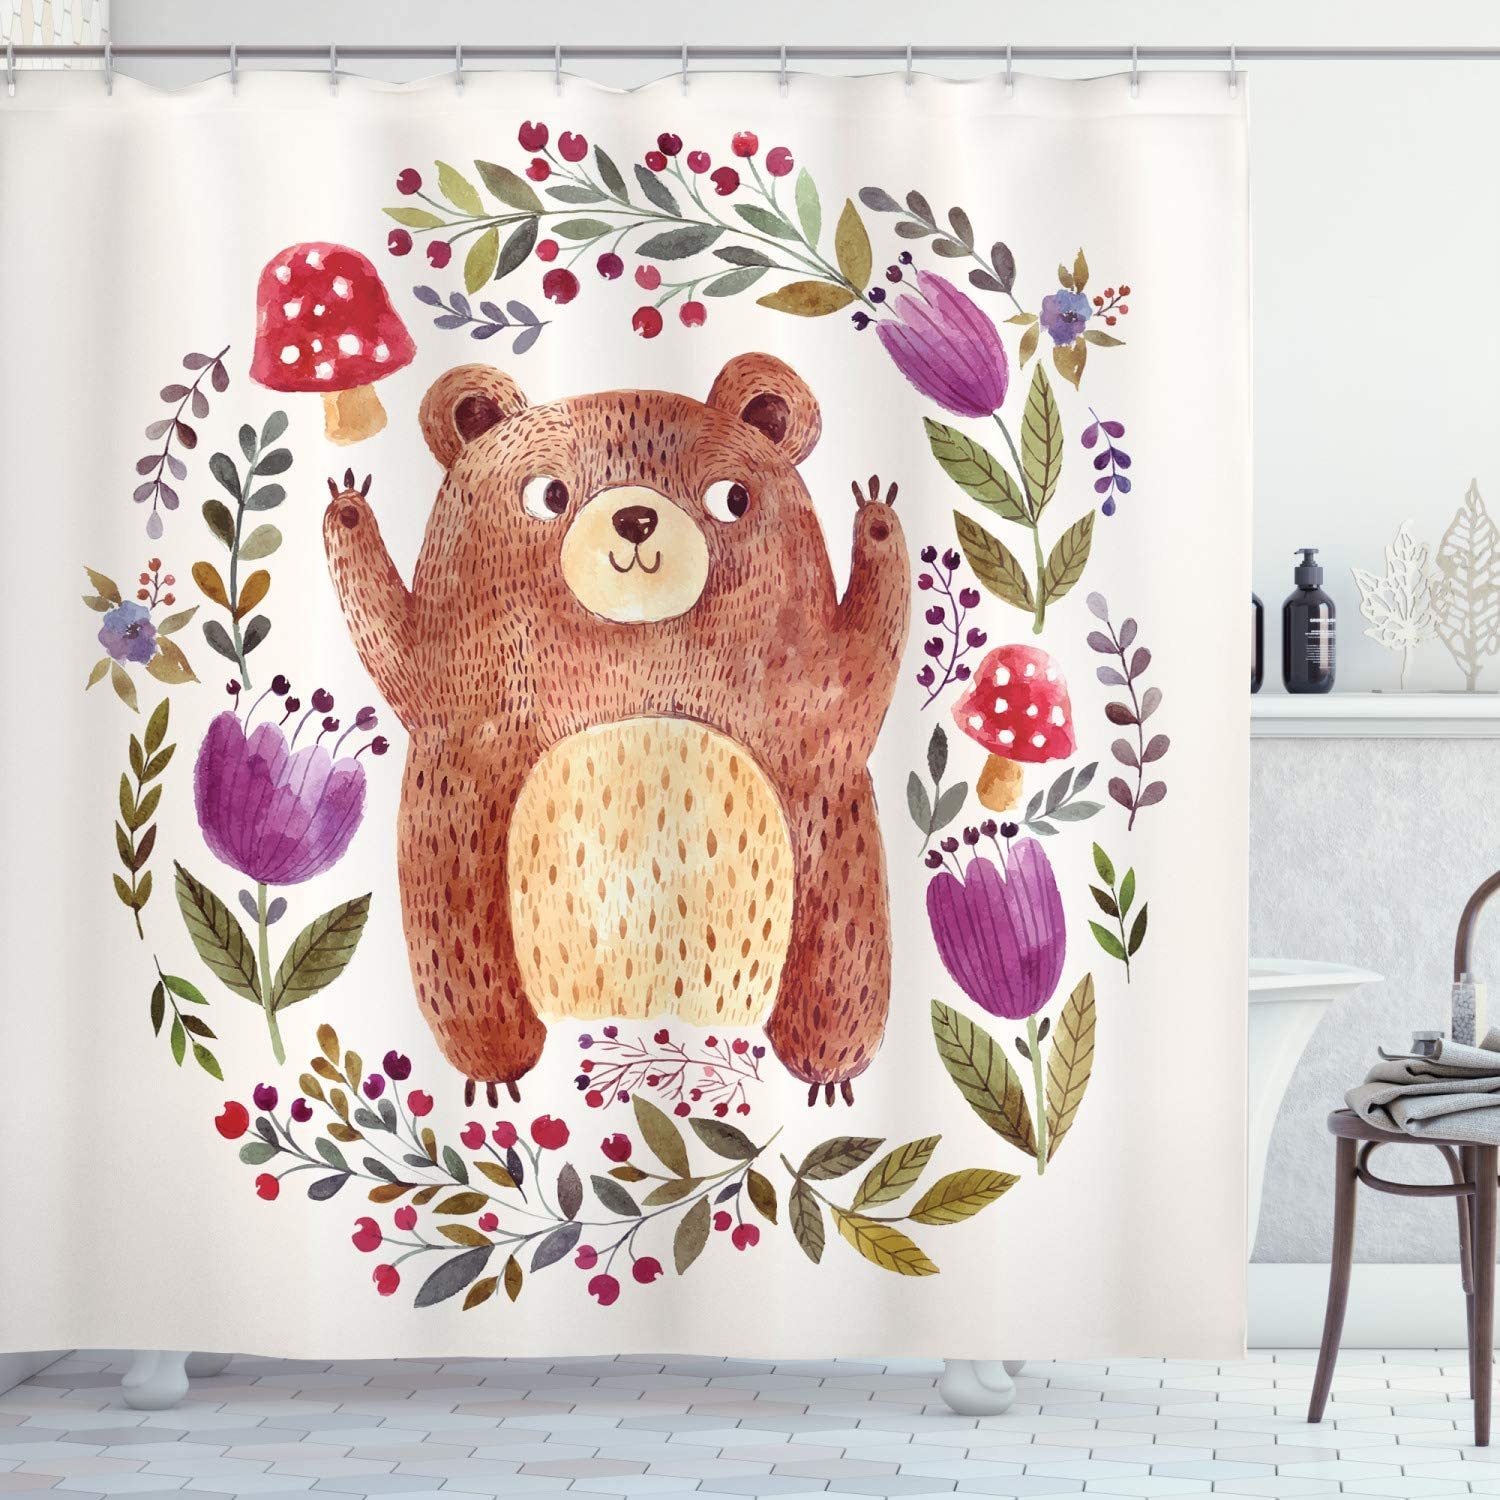 Ambesonne Watercolor Flower Shower Curtain, Illustration of Happy Little Bear in Frame of Flowers Mushrooms Wreath, Cloth Fabric Bathroom Decor Set with Hooks, 75